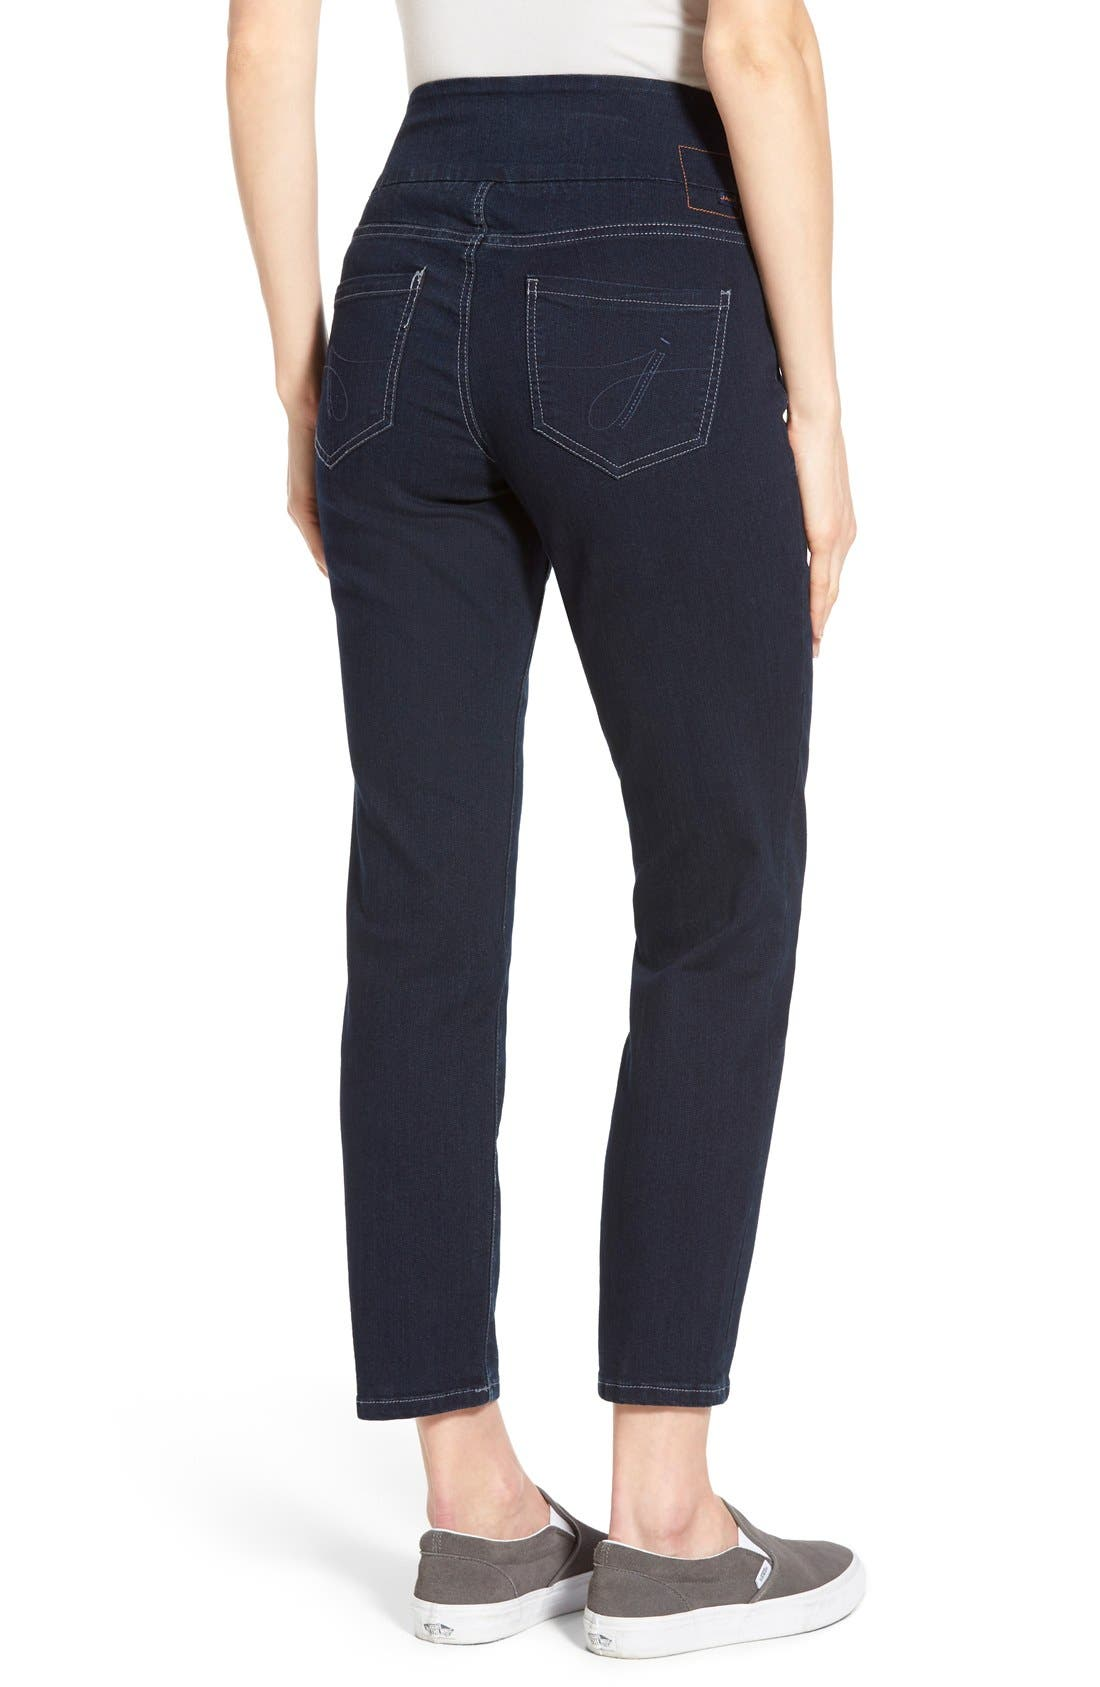 Alternate Image 2  - Jag Jeans 'Amelia' Pull-On Slim Ankle Jeans (Indigo) (Petite)